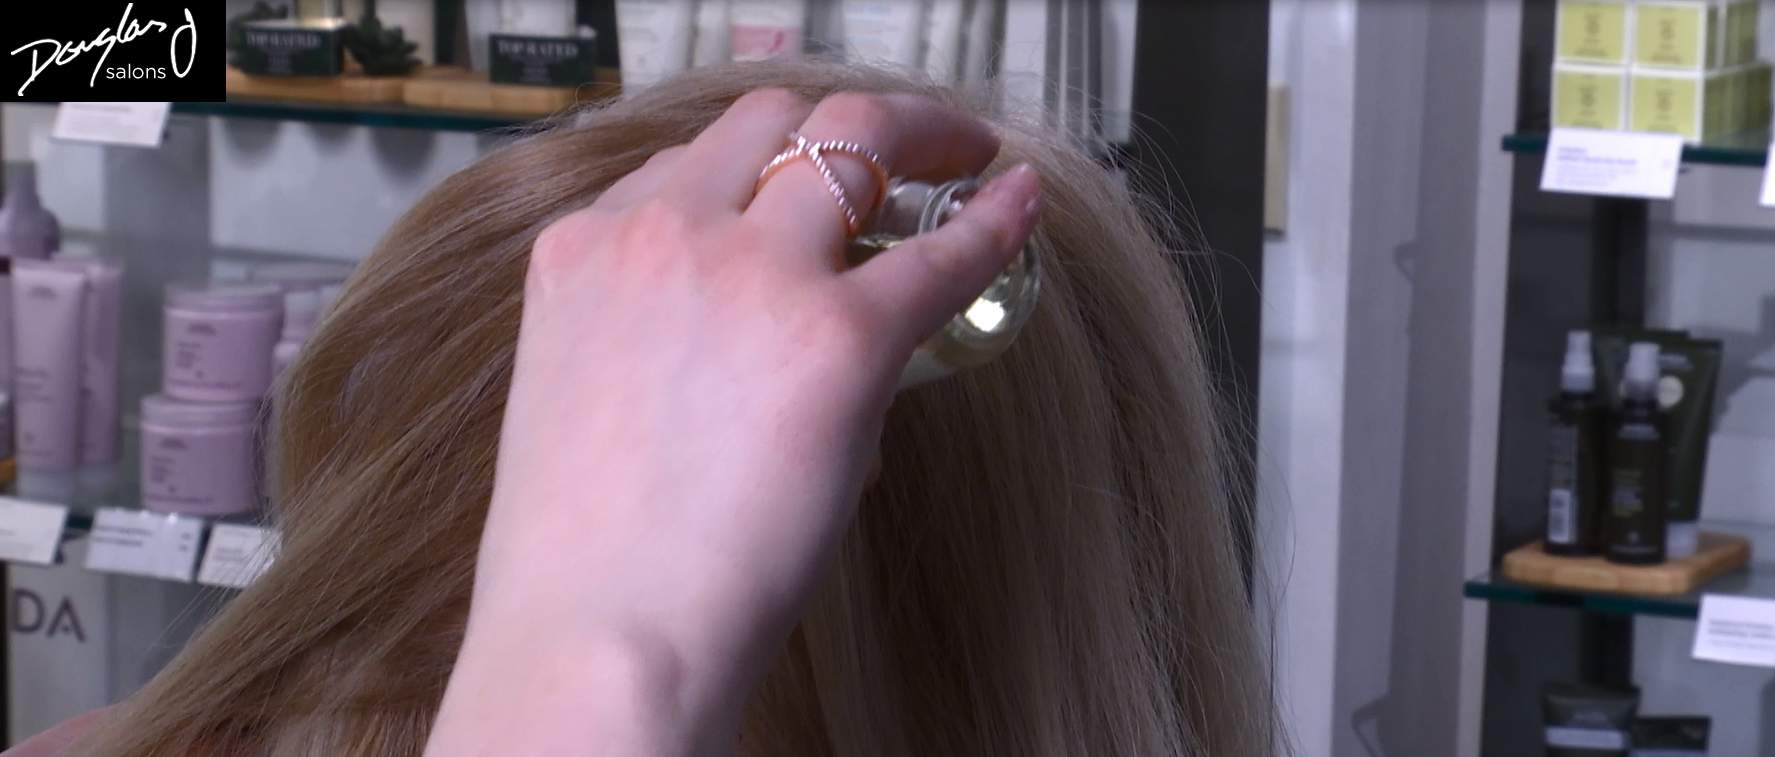 Dry Scalp preview1A_374605